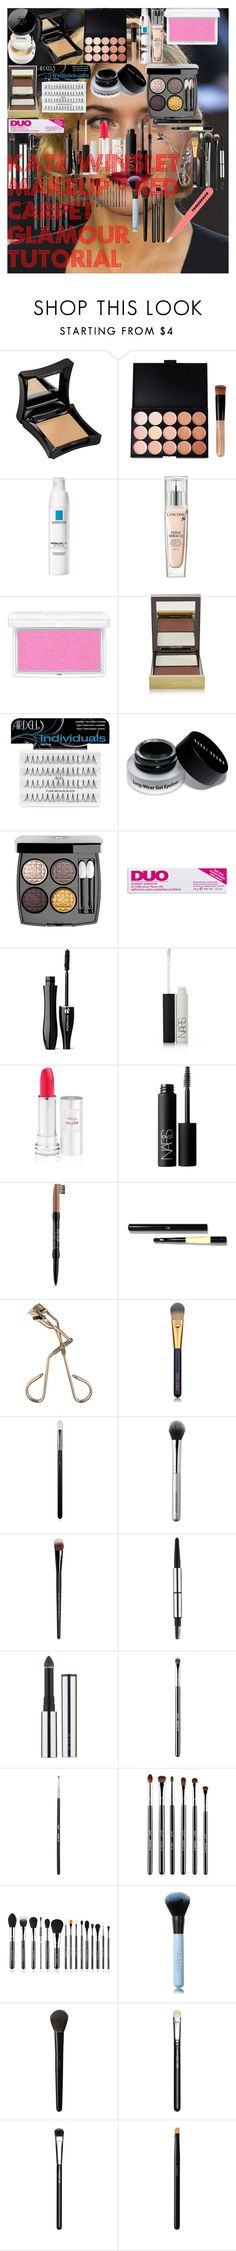 """""""Kate Winslet MakeUp - Red Carpet Glamour Tutorial"""" by oroartye-1 on Polyvore featuring beauty, Chanel, Illamasqua, La Roche-Posay, Lancôme, RMK, Tom Ford, Ardell, Bobbi Brown Cosmetics and DUO"""